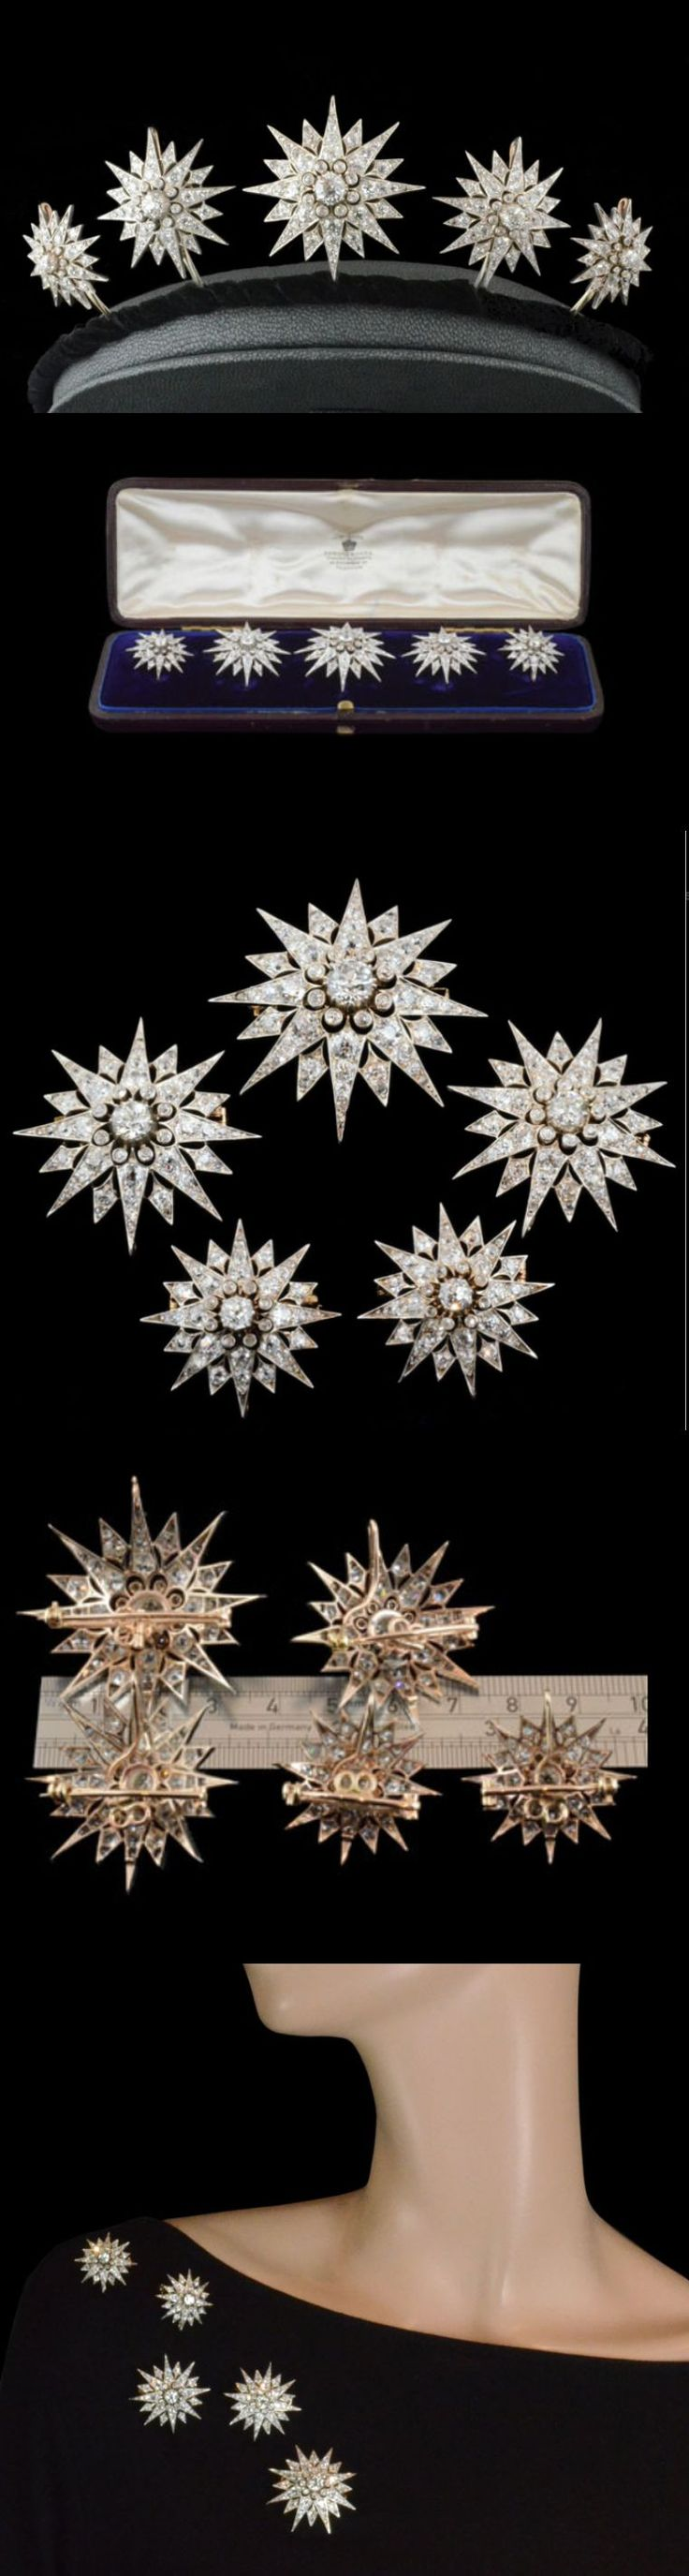 Victorian diamond star tiara with 5 detachable diamond star brooches set with Old mine cut diamonds in silver and 18c gold setting English c.1880. Image Hancock's http://www.hancocks-london.com/acatalog/info_1_BRO119975AM.html